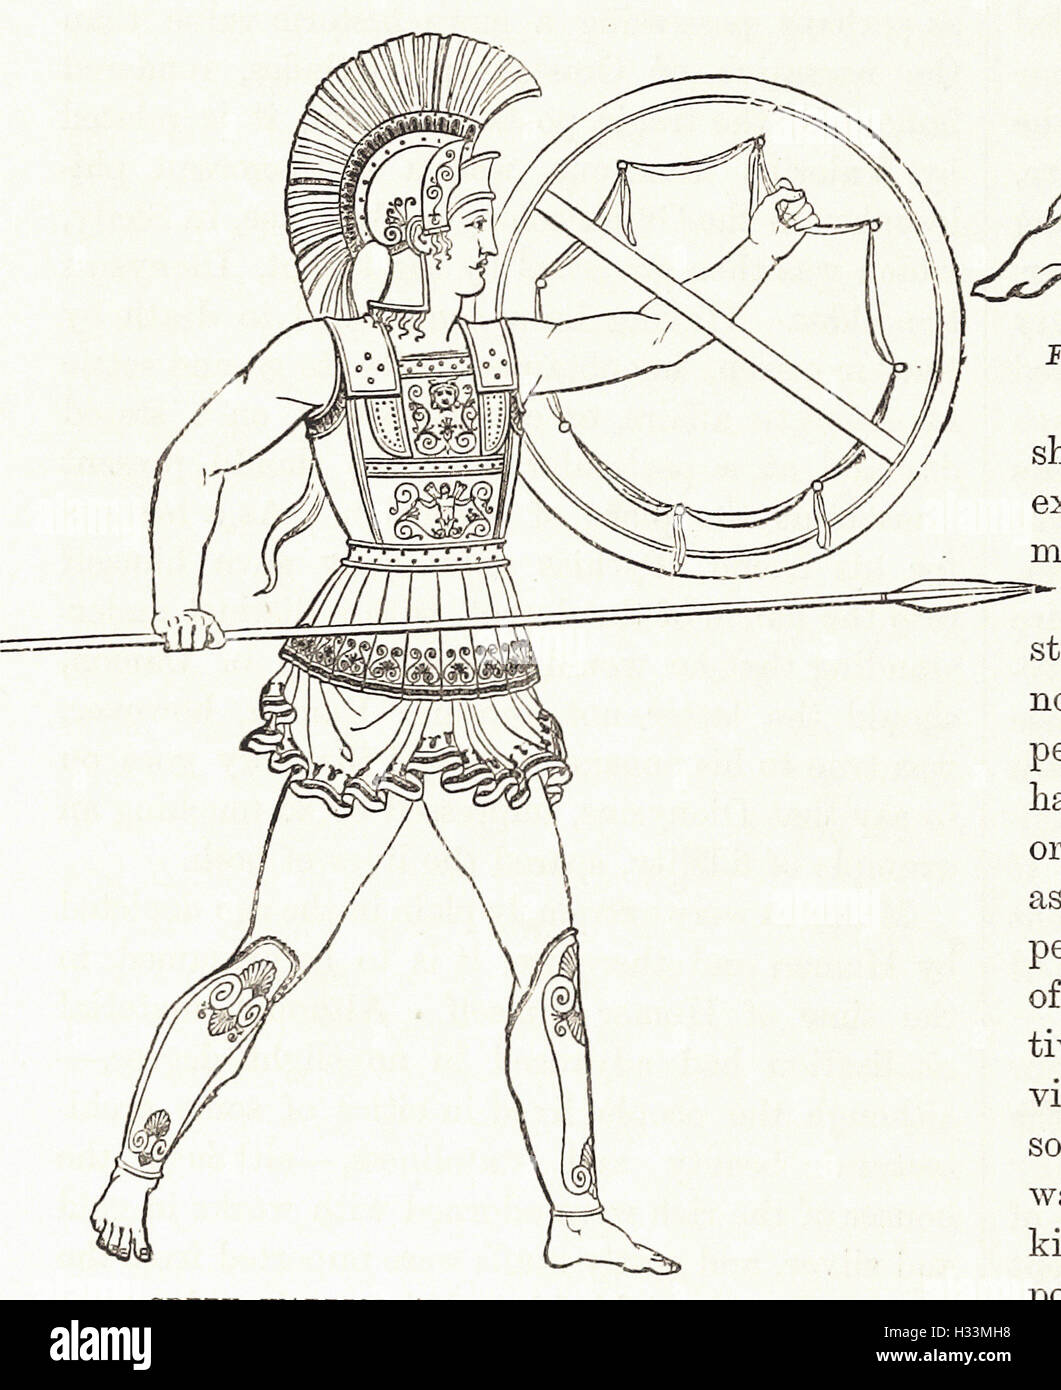 GREEK WARRIOR ARMED WITH SPEAR AND SHIELD - from 'Cassell's Illustrated Universal History' - 1882 - Stock Image